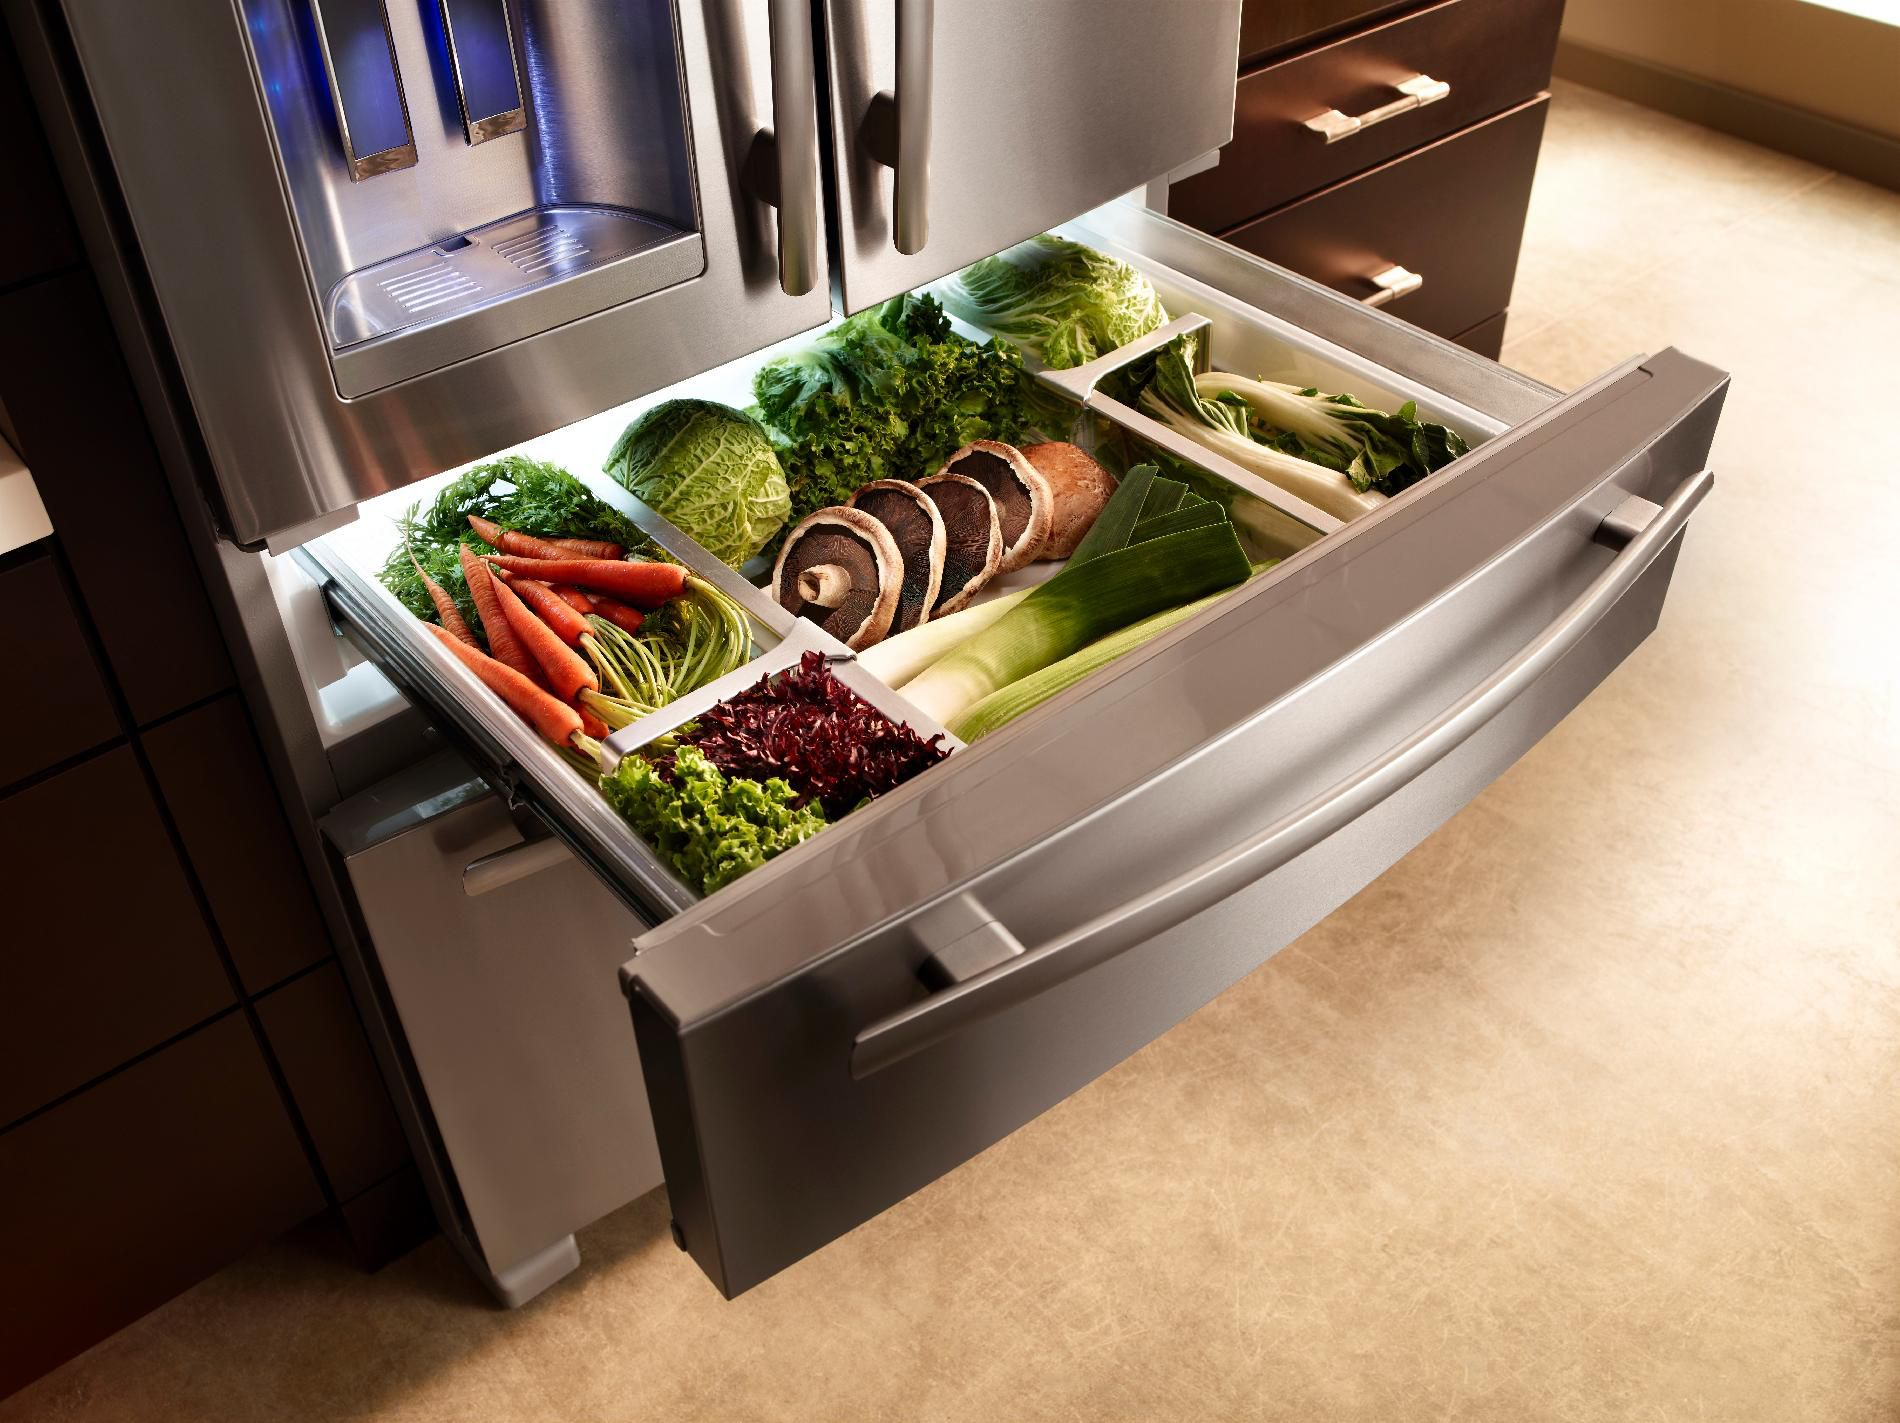 Jenn-Air 25 cu. ft. French-Door Refrigerator w/ 3rd Drawer - Stainless Steel